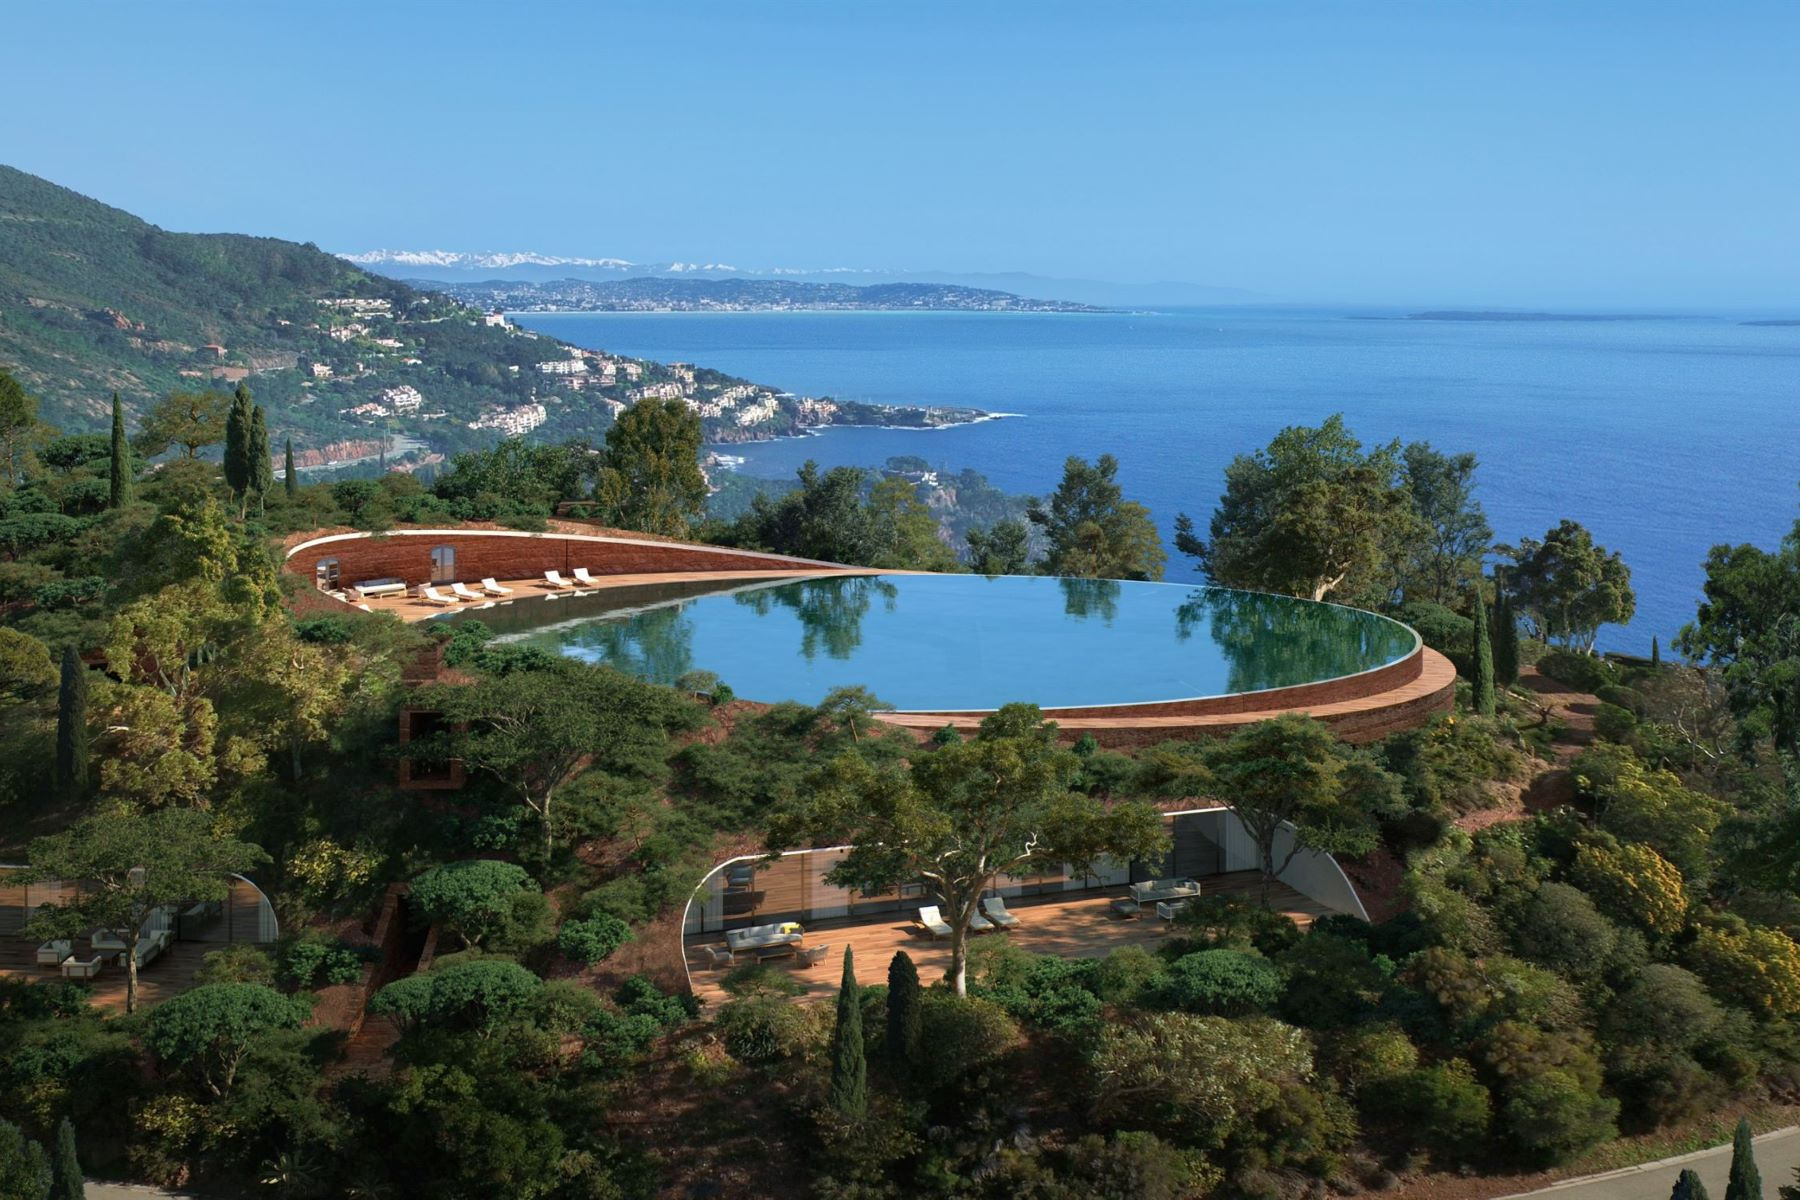 Property 용 매매 에 Théoule Villa - an iconic private estate with panoramic sea views Theoule Sur Mer, 프로벤스 앞ㄹ프스 코테 D'Azur 06590 프랑스